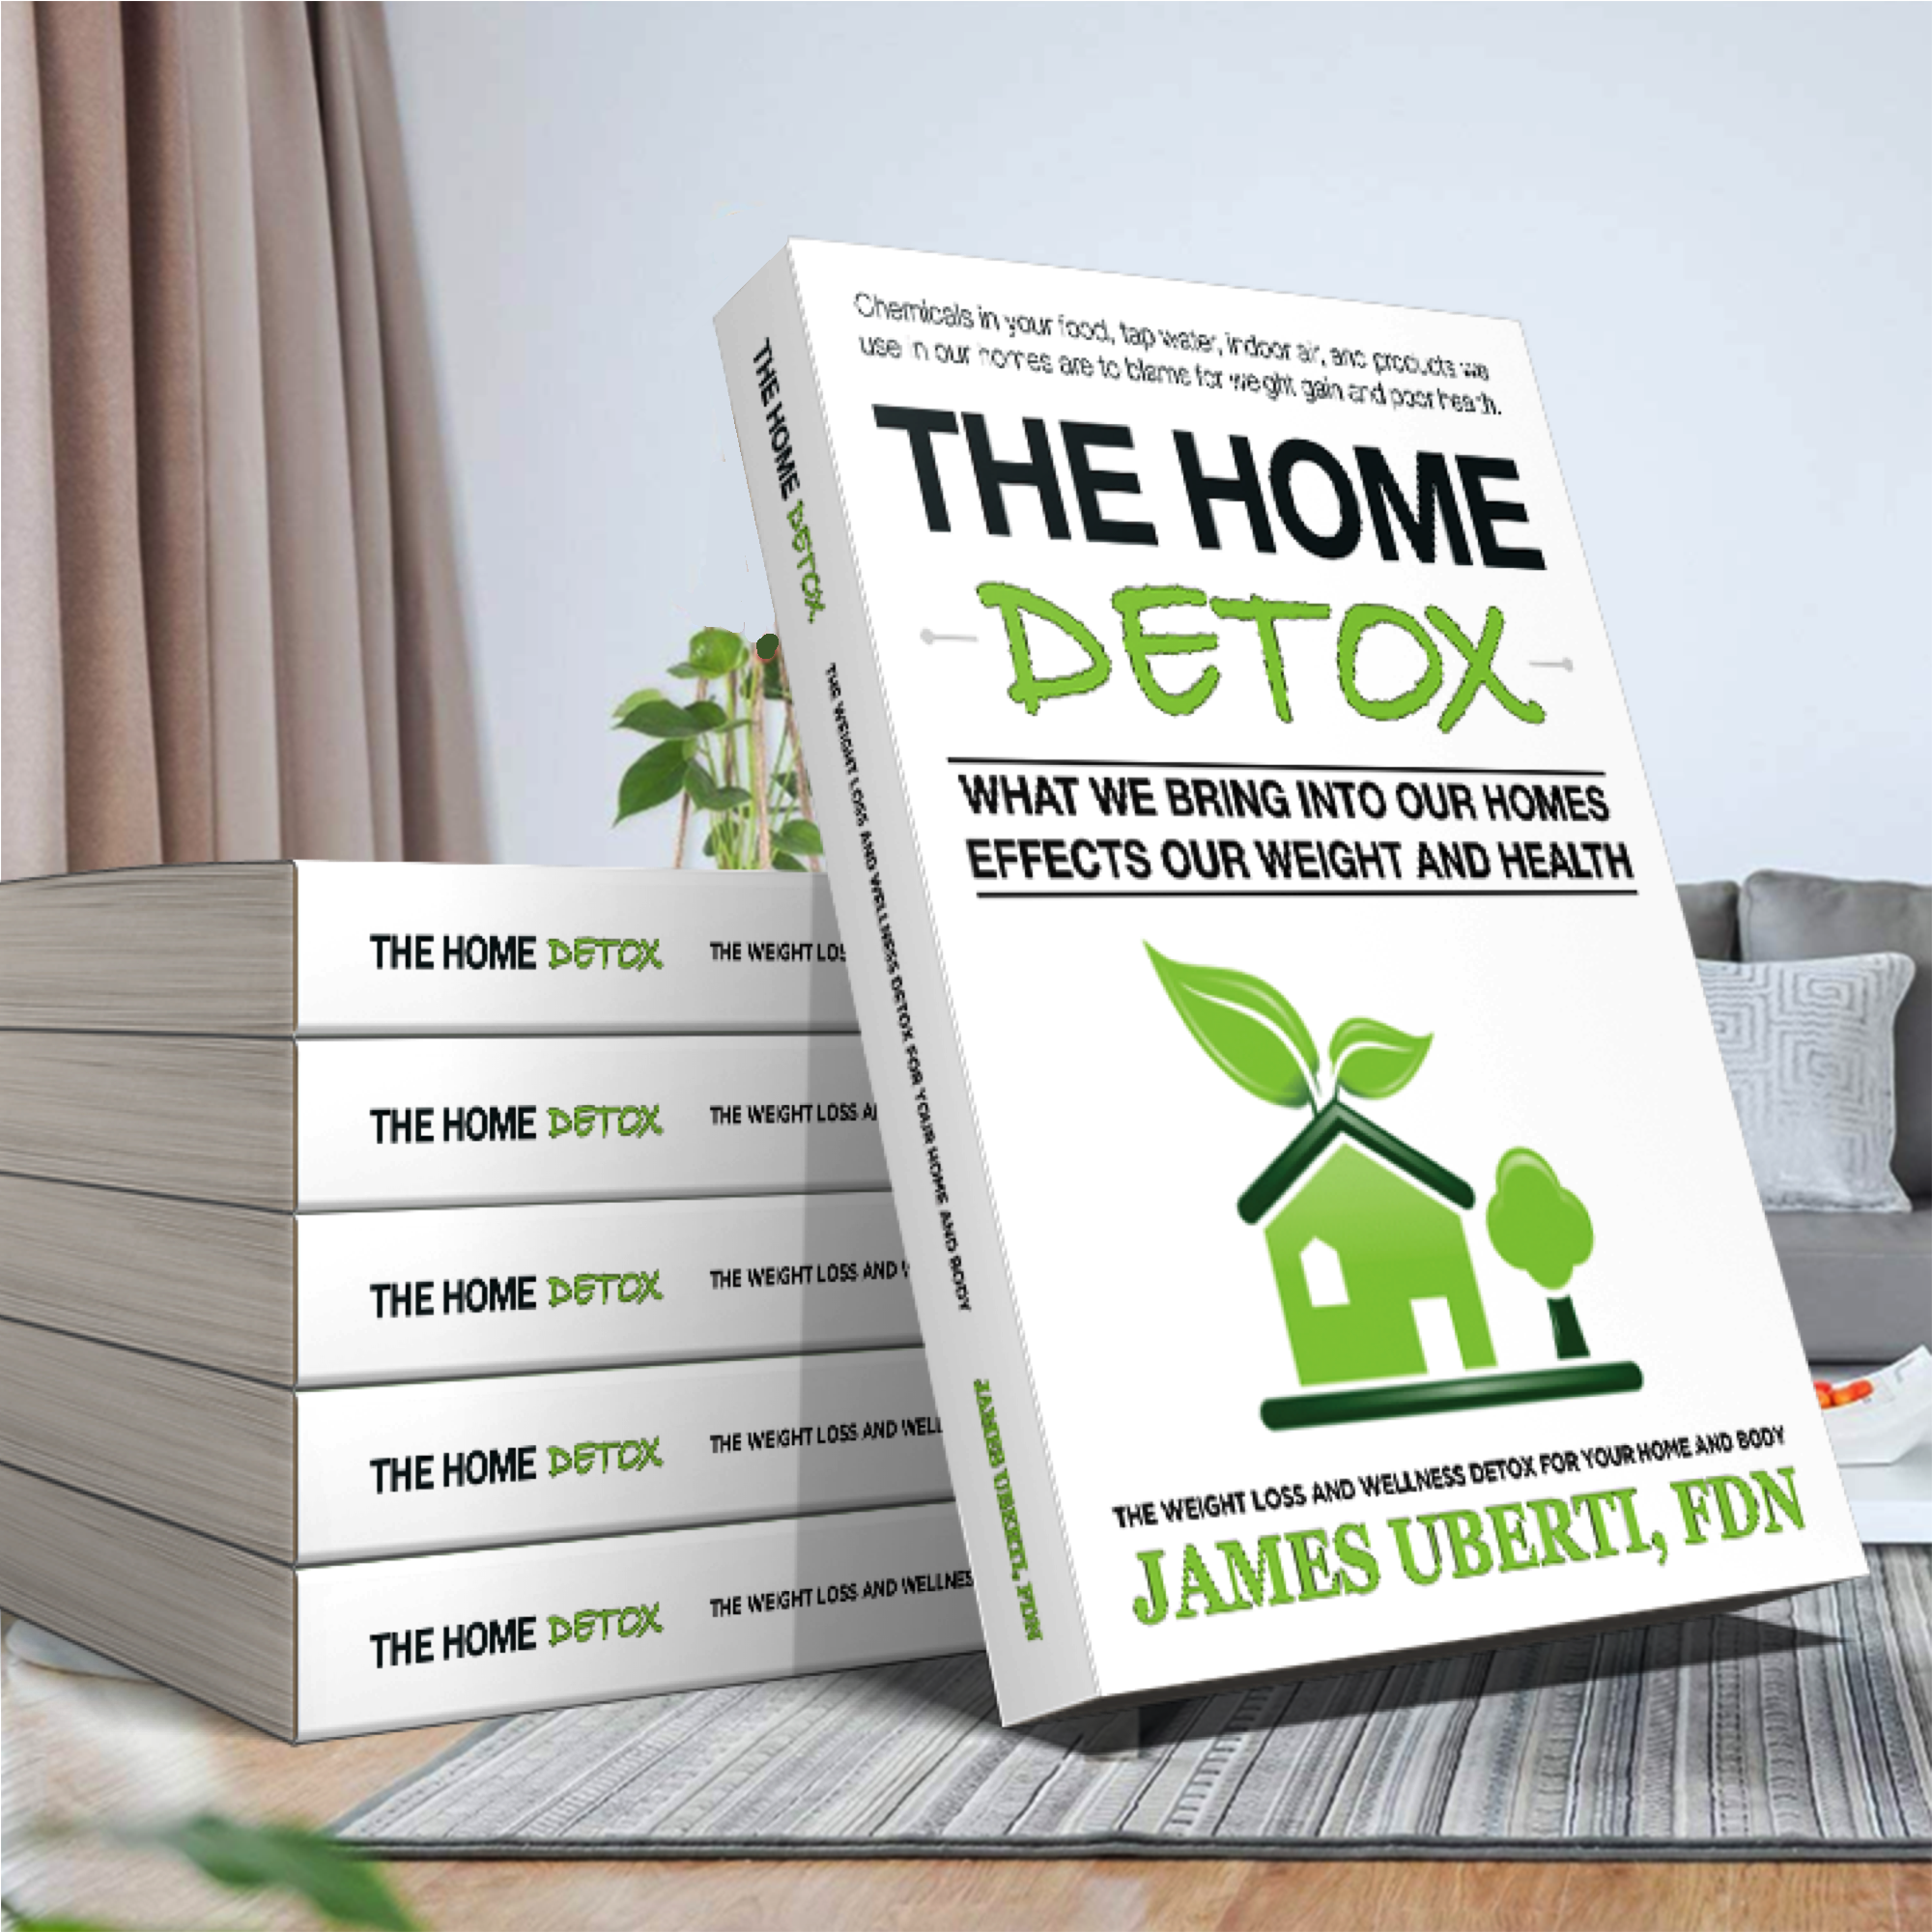 THE HOME DETOX - PRE-ORDER